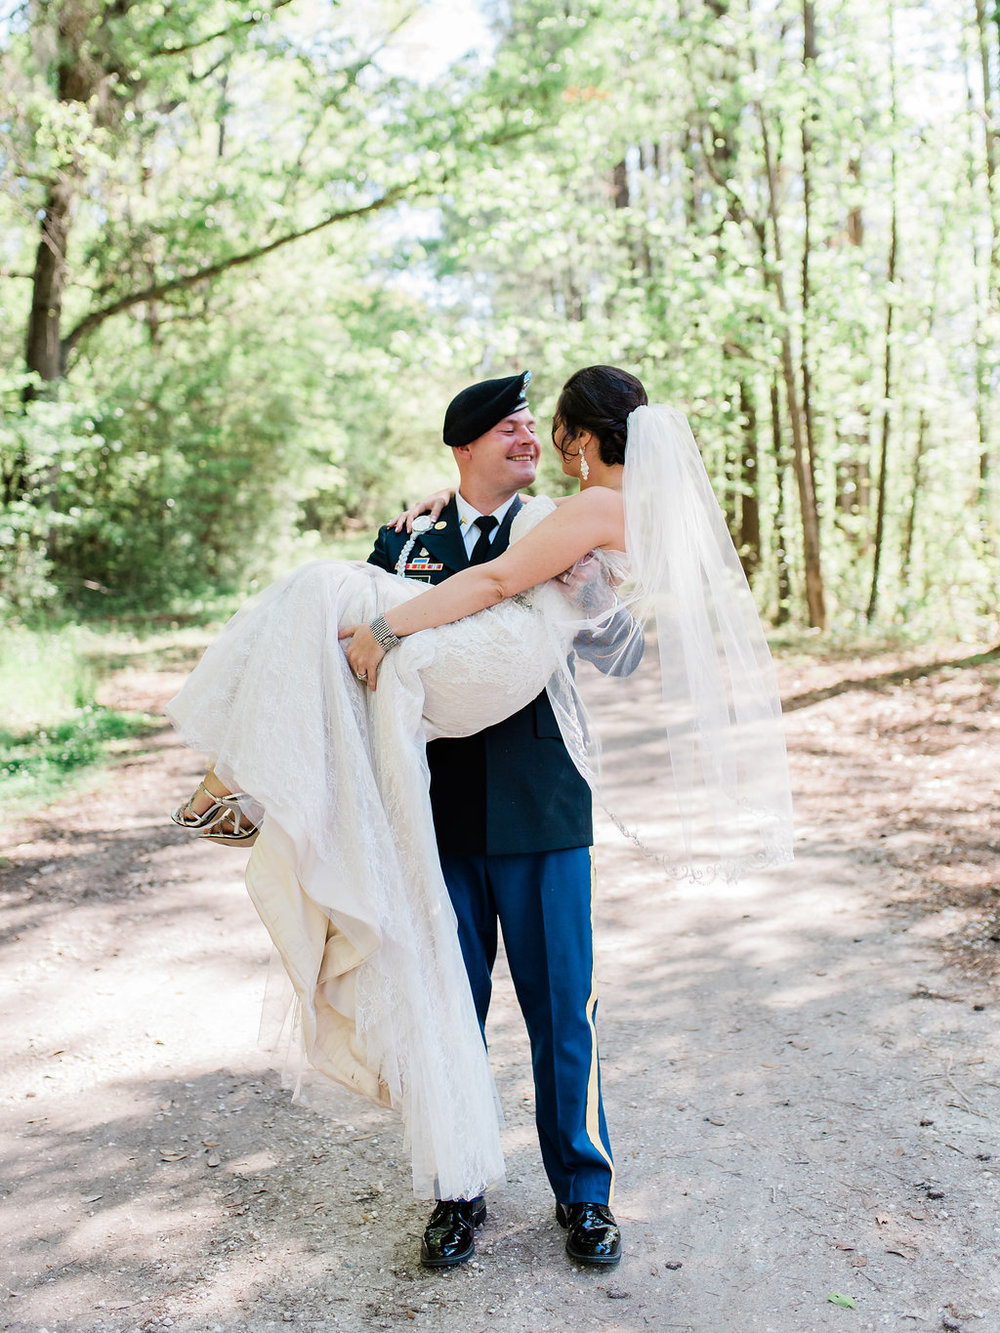 ivory-and-beau-bridal-boutique-lipski-surprise-wedding-5d-photography-military-wedding-savannah-savannah-military-bride-surprise-wedding-16.jpg